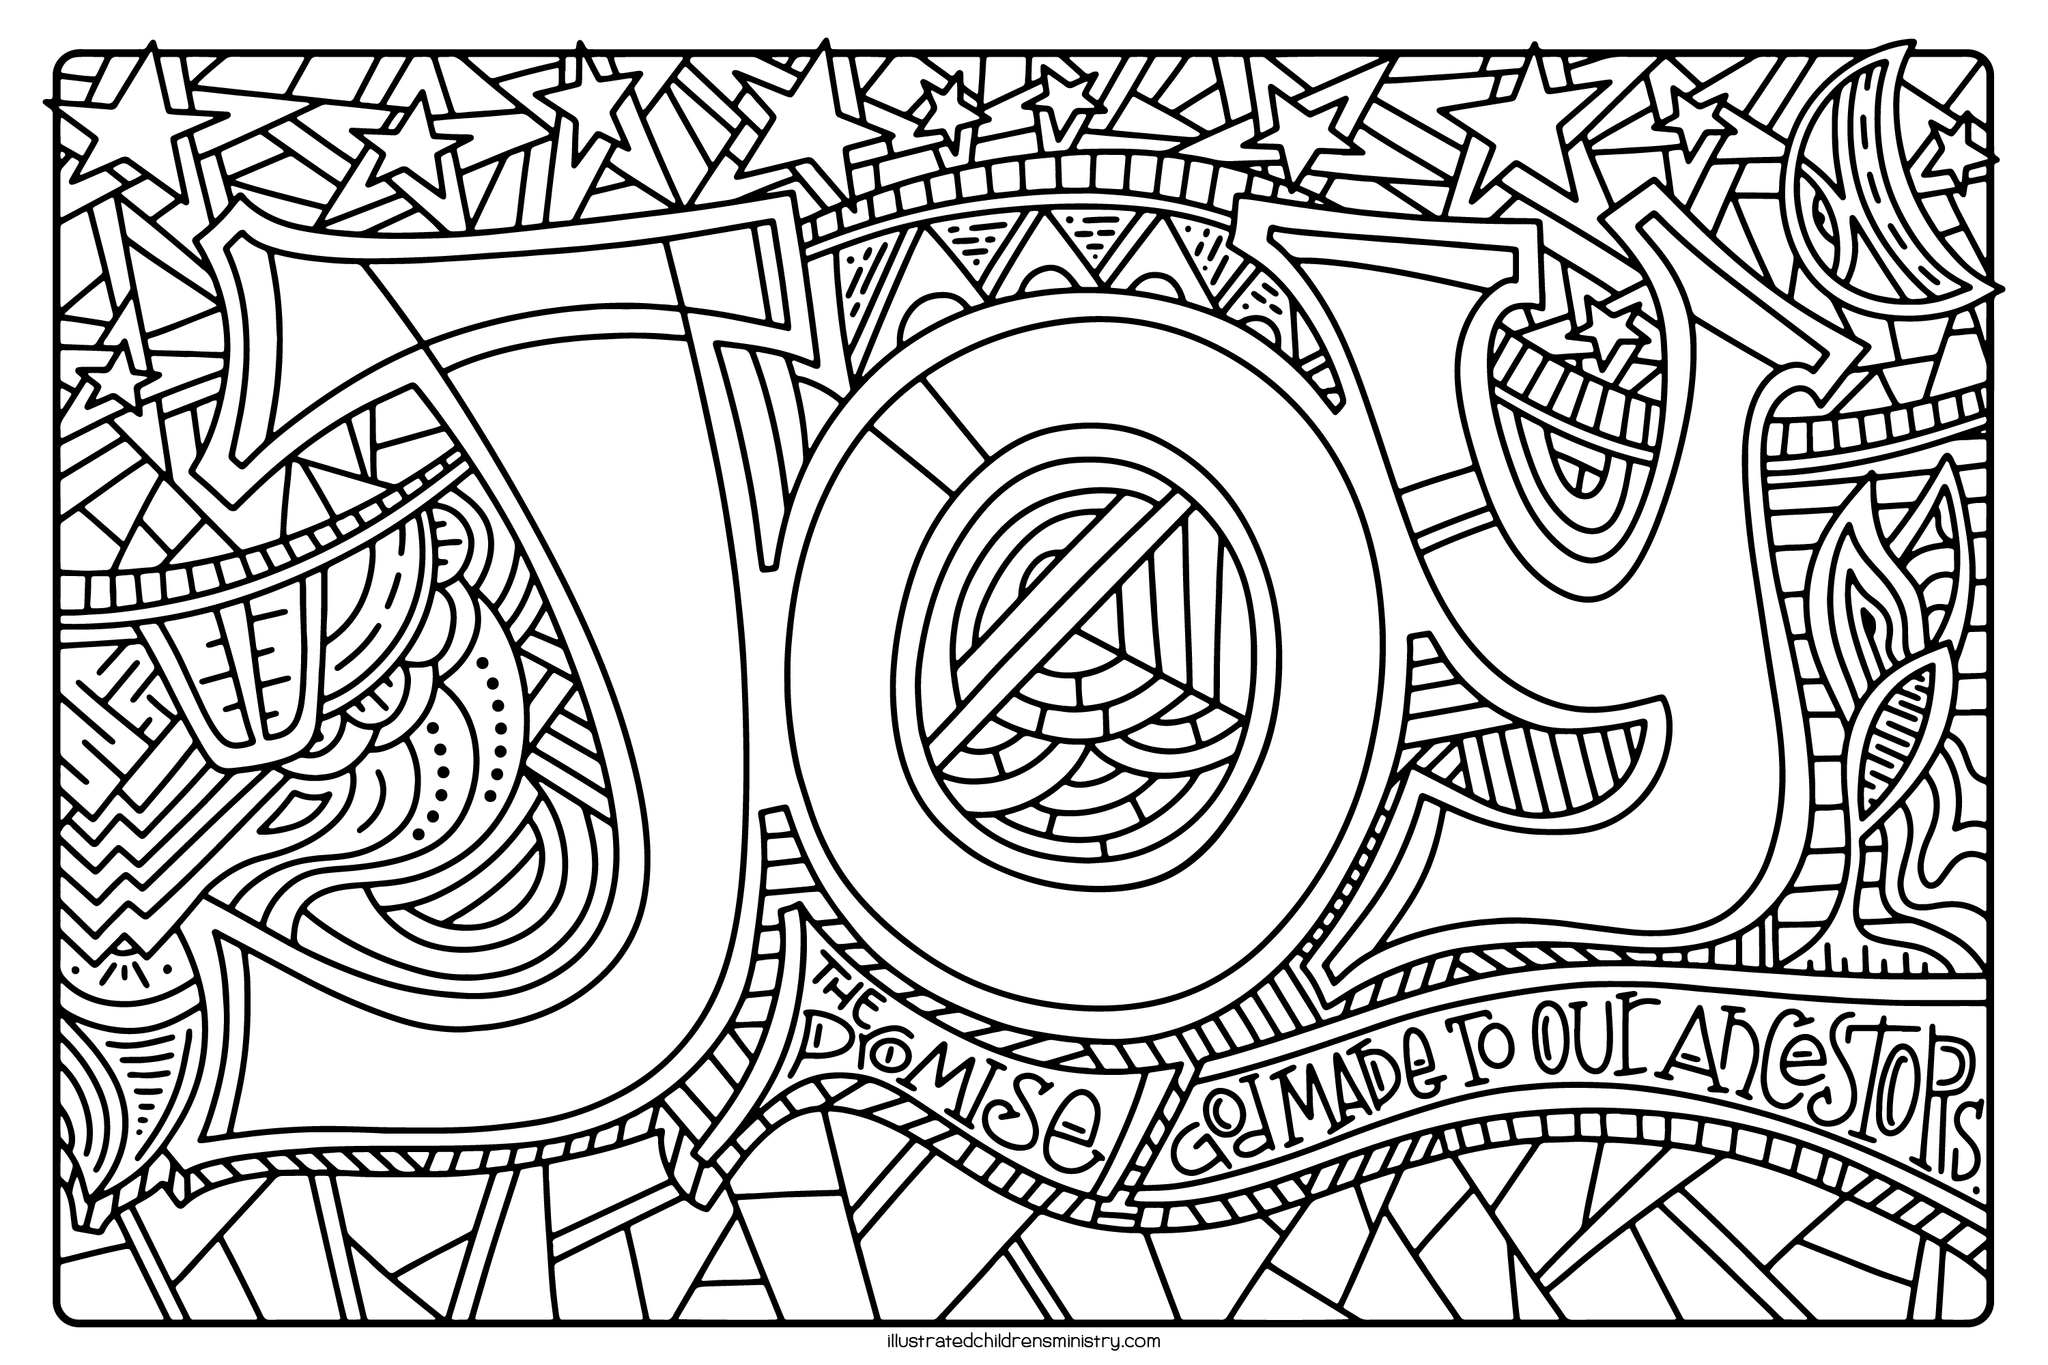 Mary's Song Coloring Page - Joy